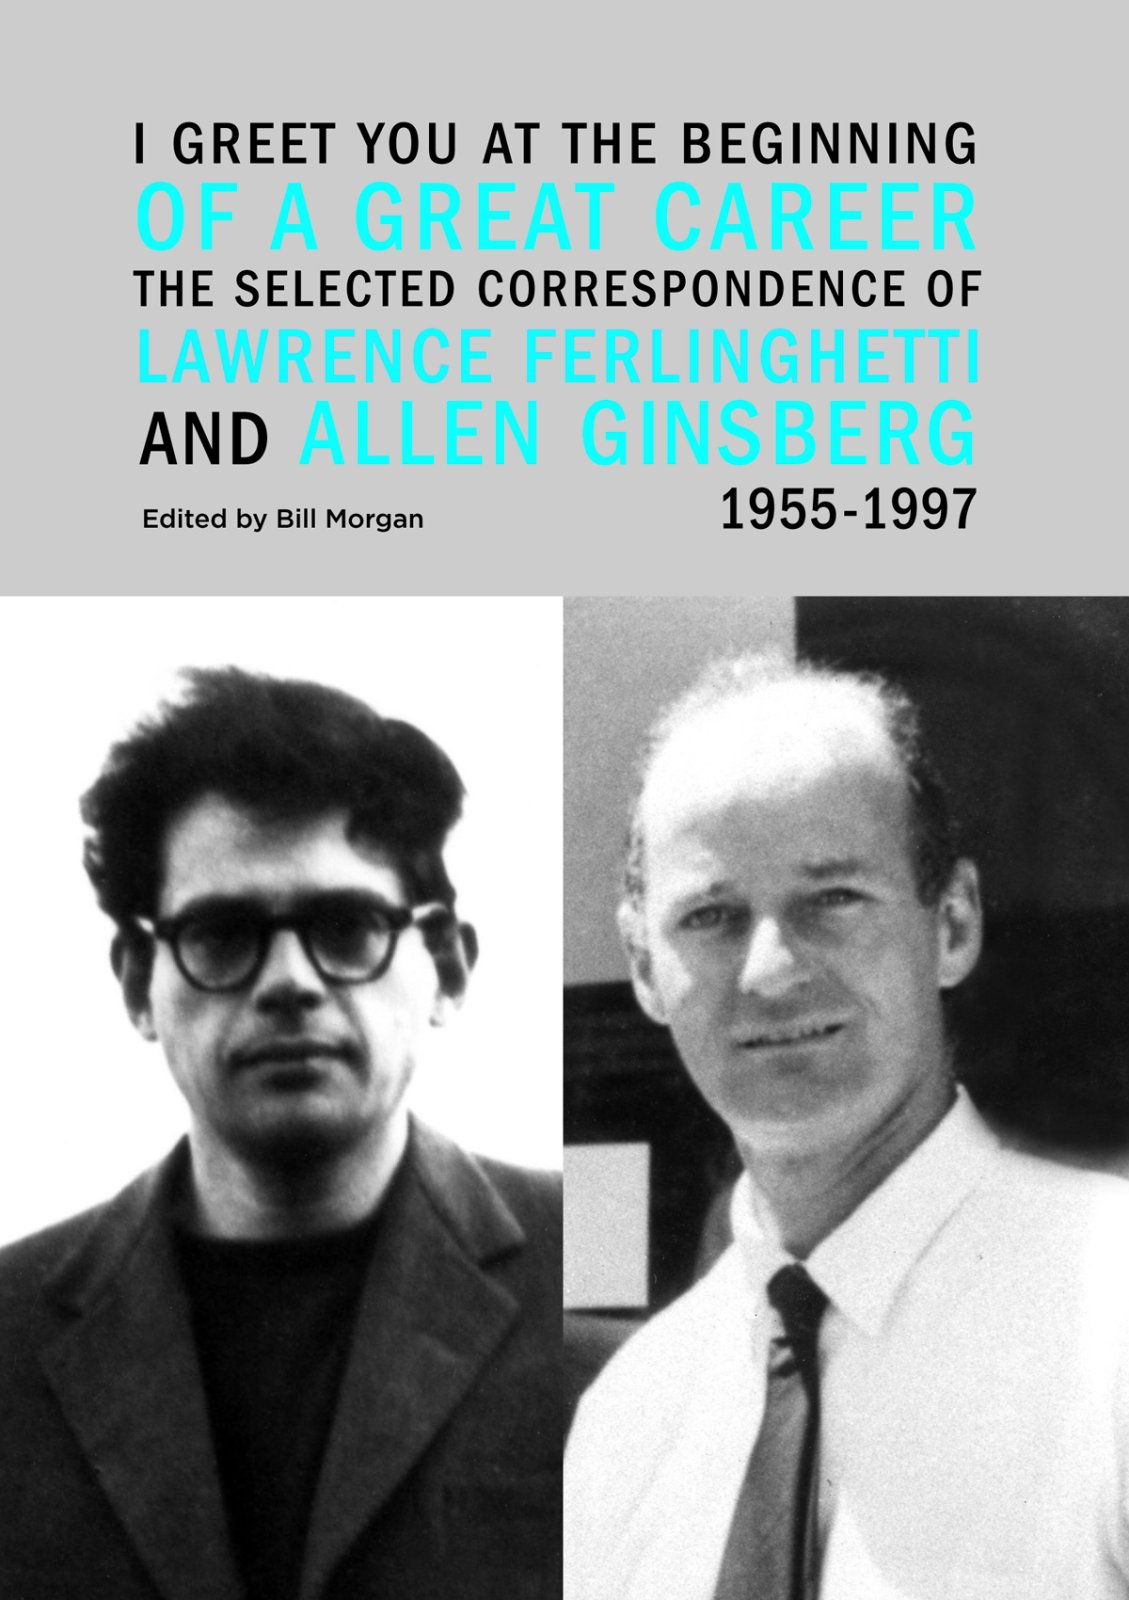 I greet you at the beginning of a great career the selected i greet you at the beginning of a great career the selected correspondence of lawrence ferlinghetti and allen ginsberg 1955 1997 lawrence ferlinghetti m4hsunfo